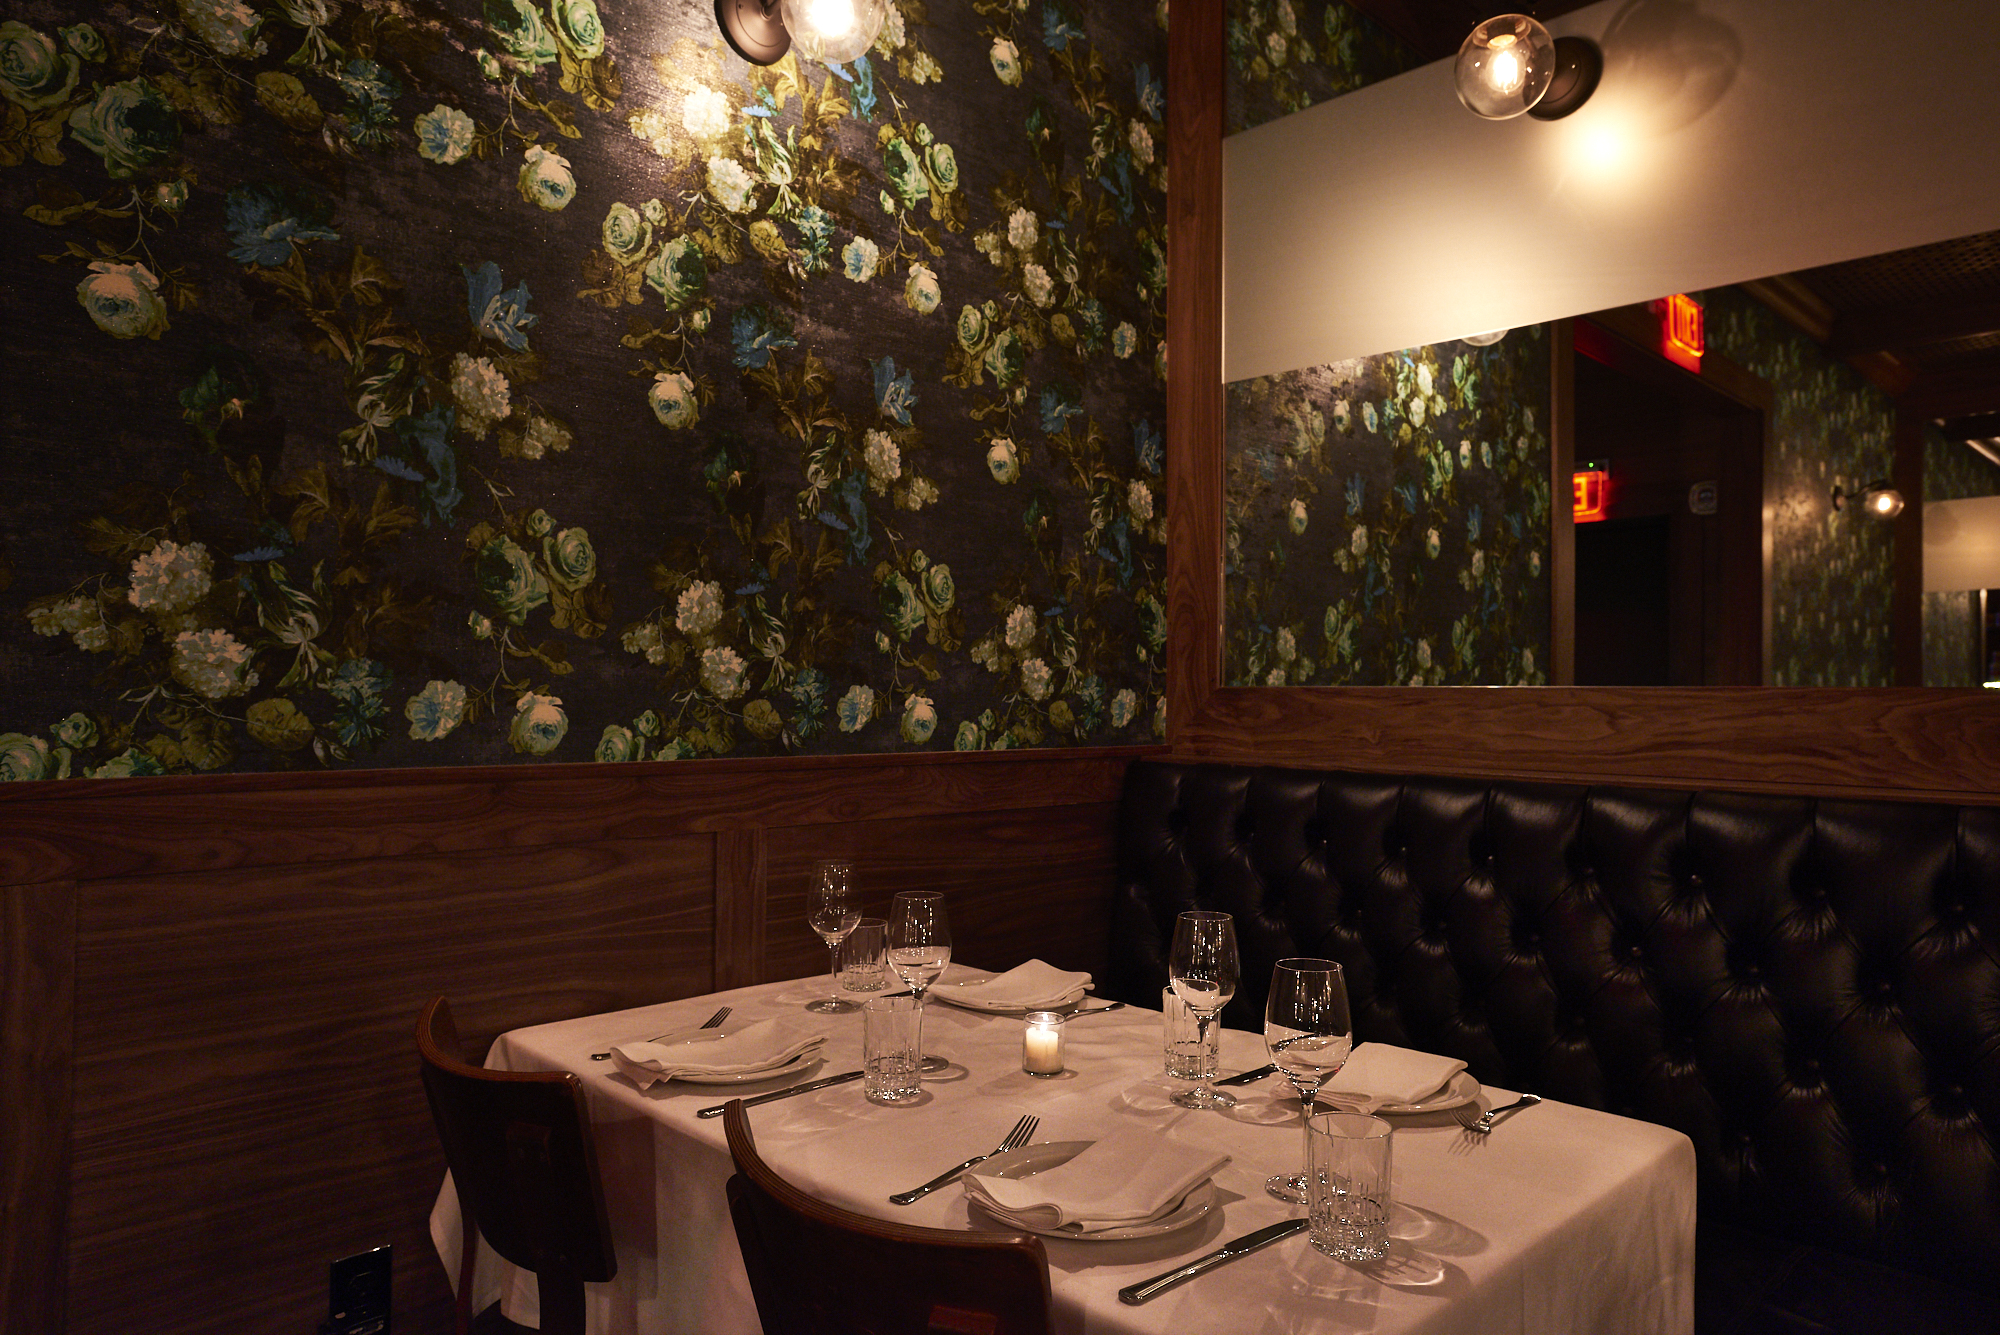 behold omerta's old-school american-italian menus and decor